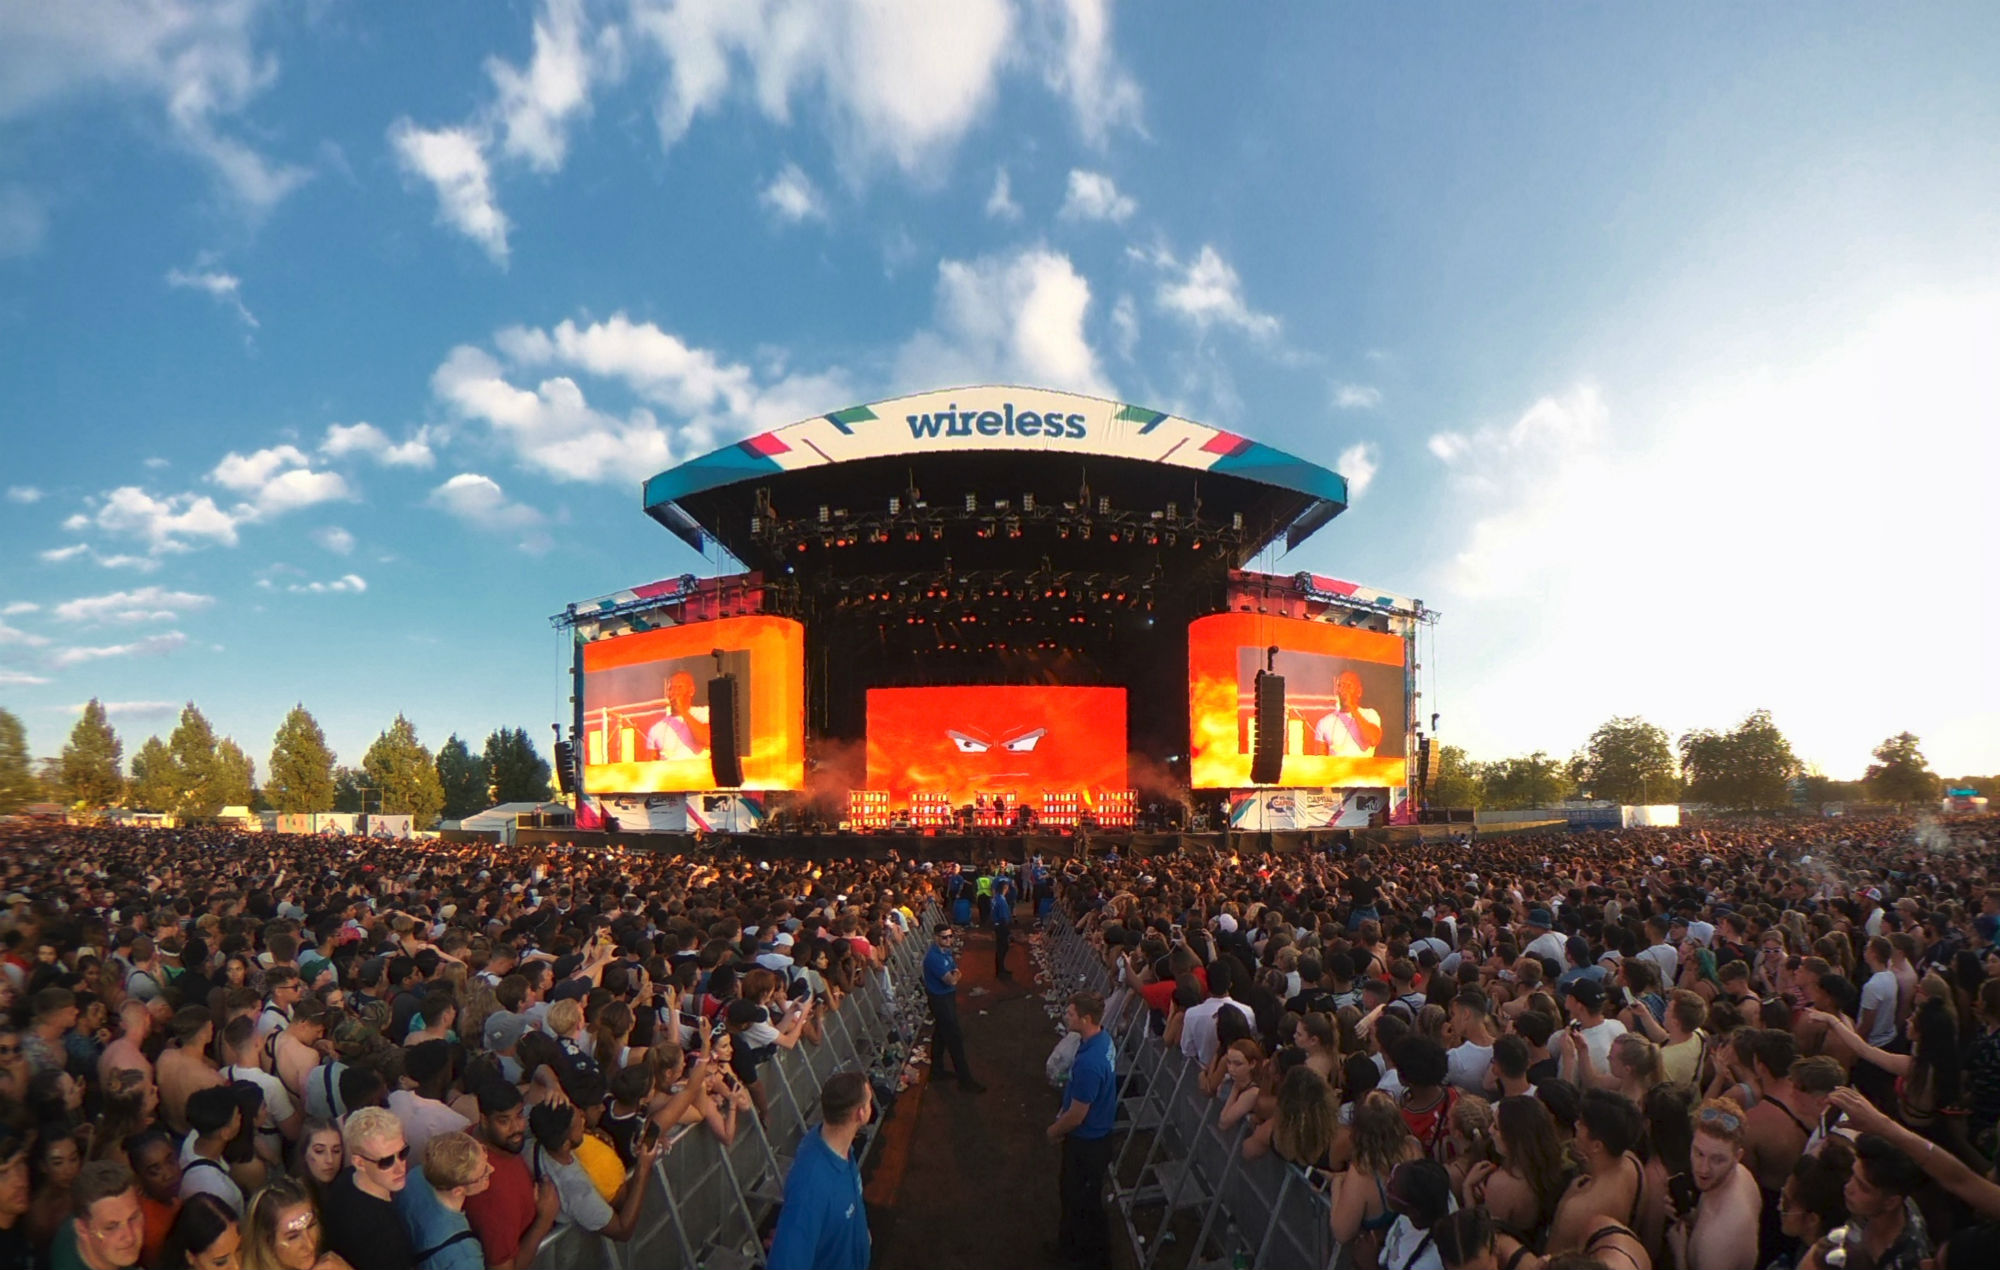 Wireless festival swearing offensive outfits